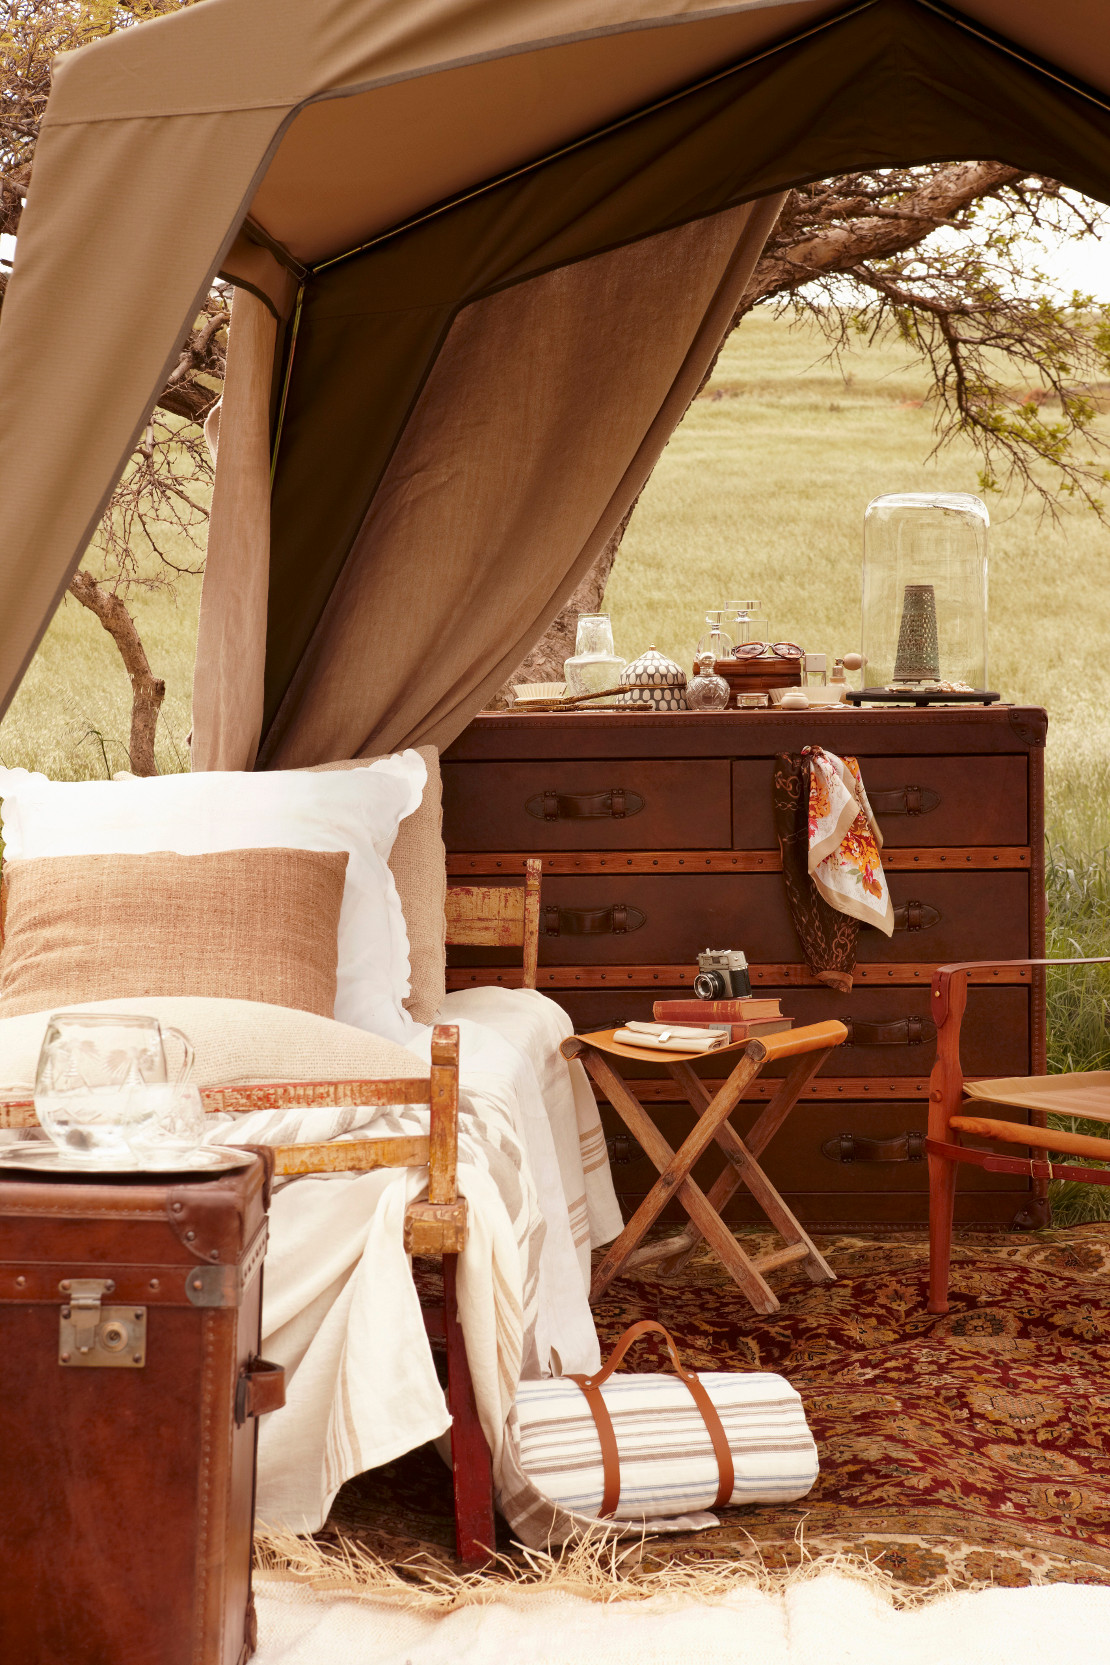 westwing-safari-lodge